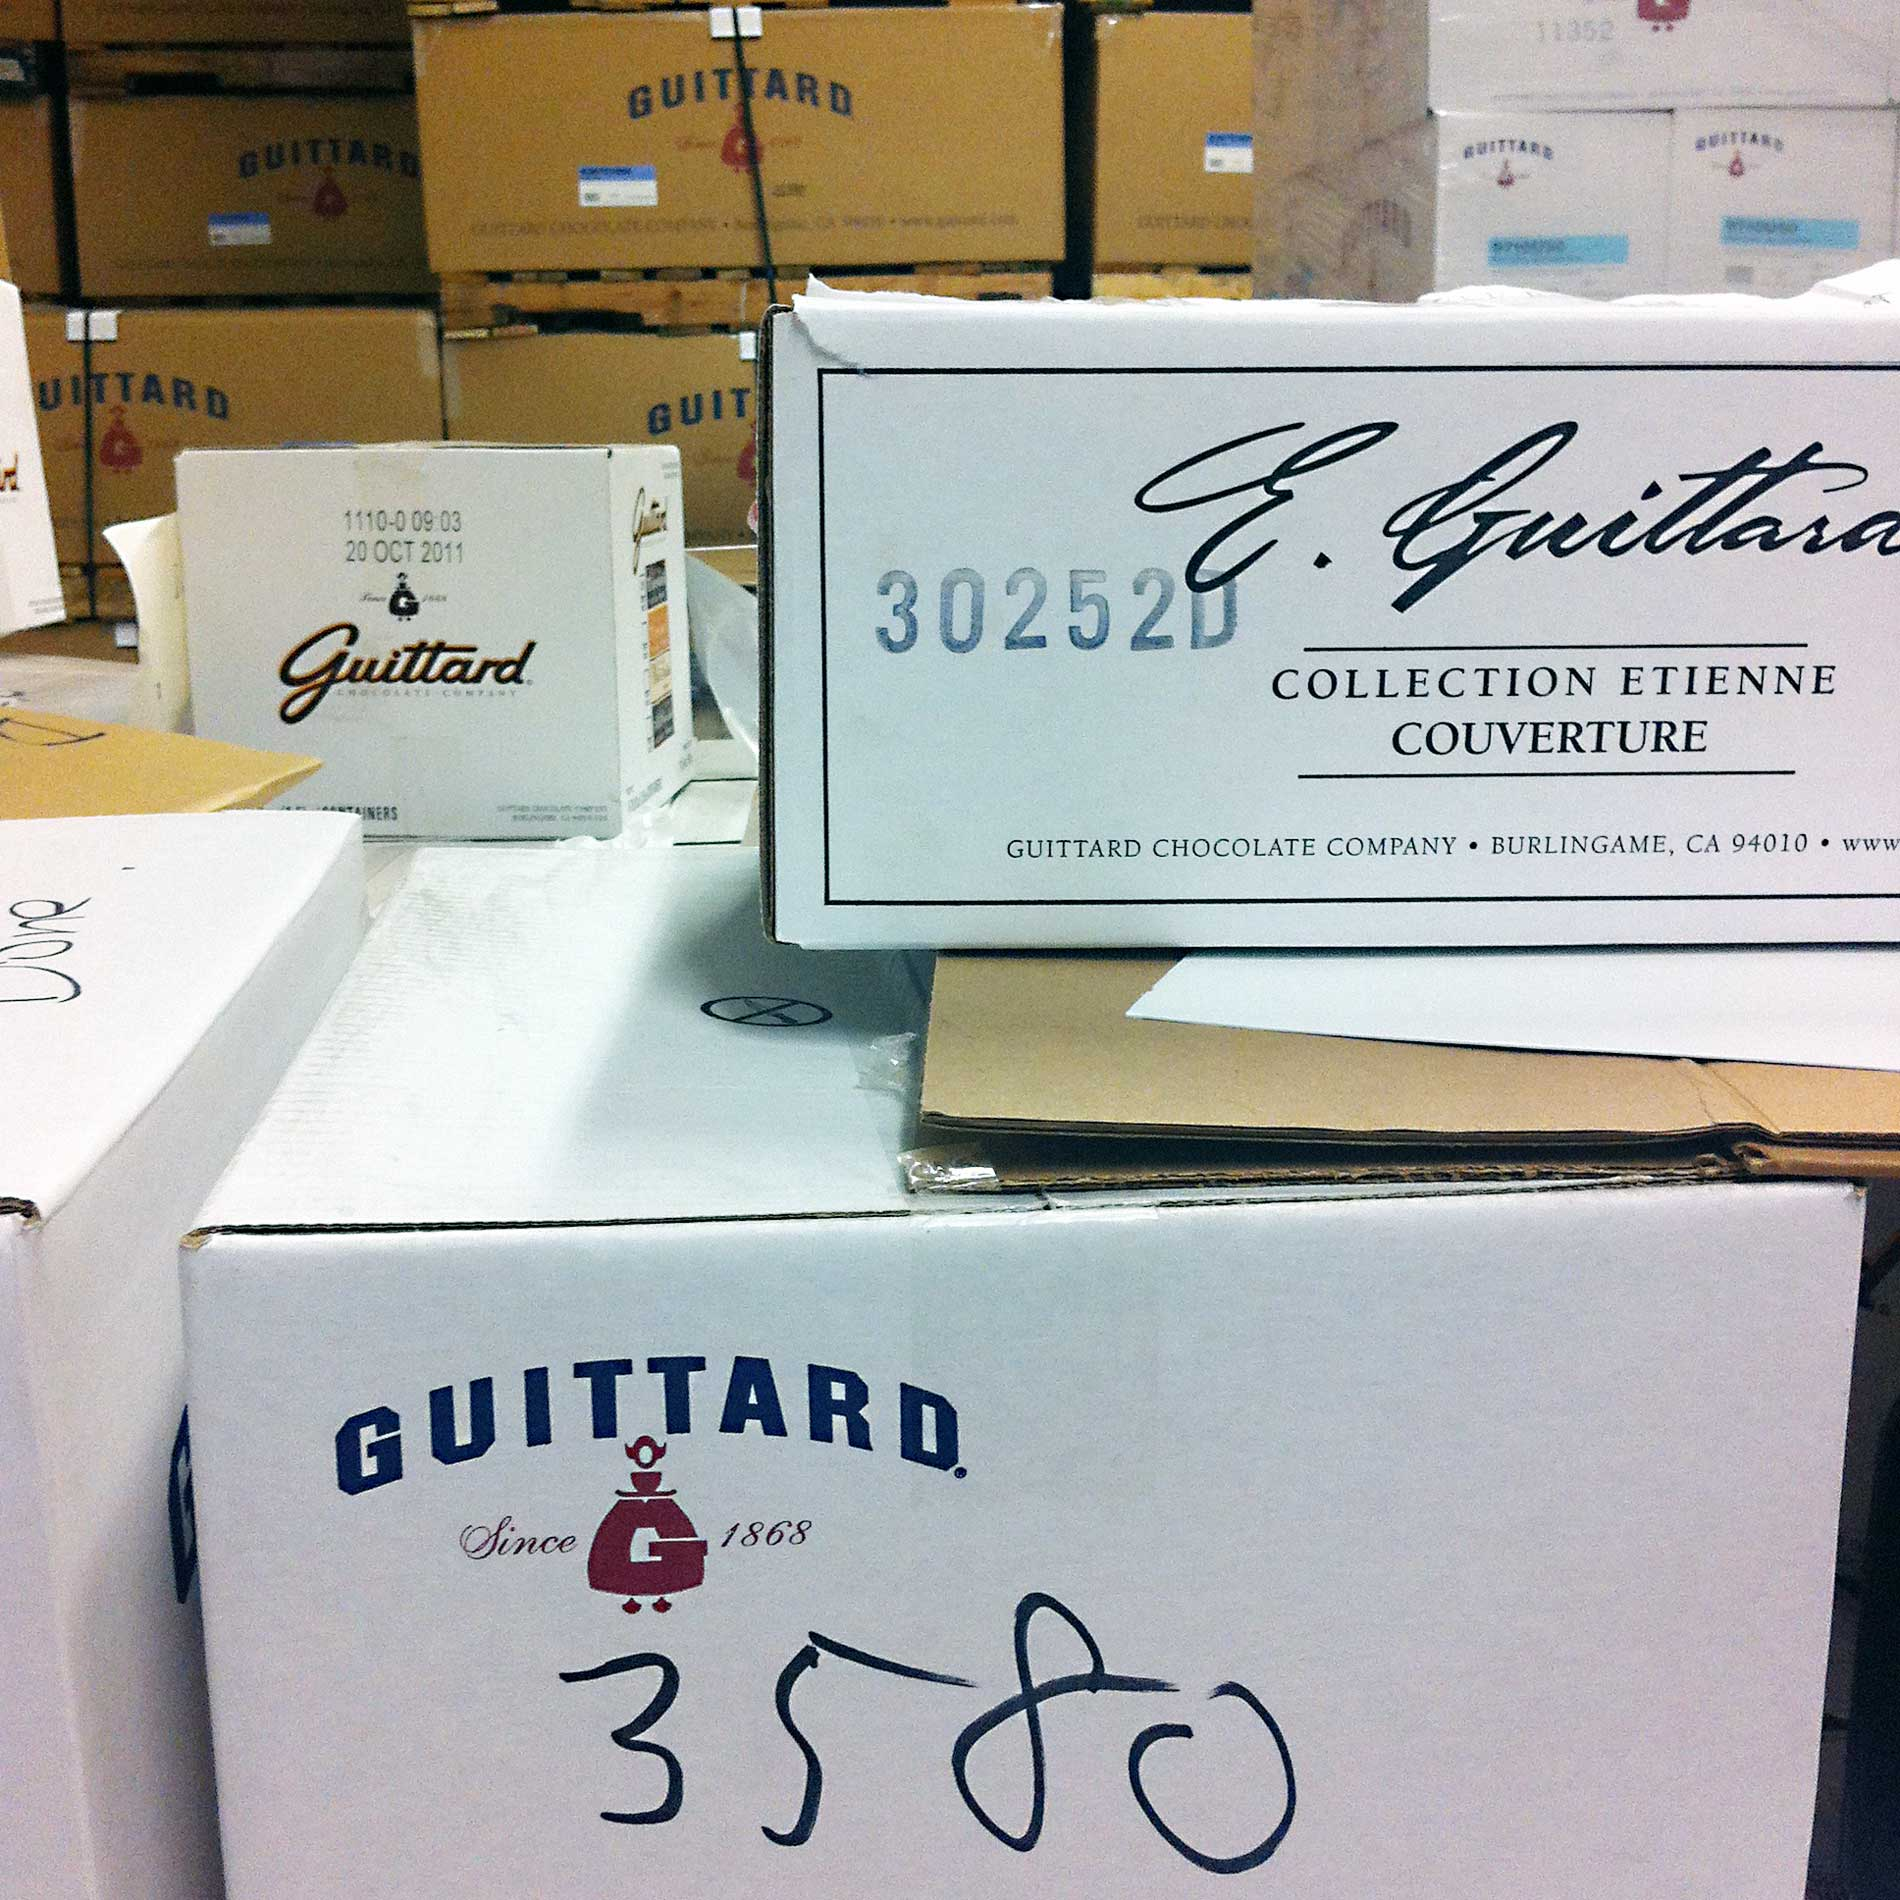 Guittard-BeforeBoxes